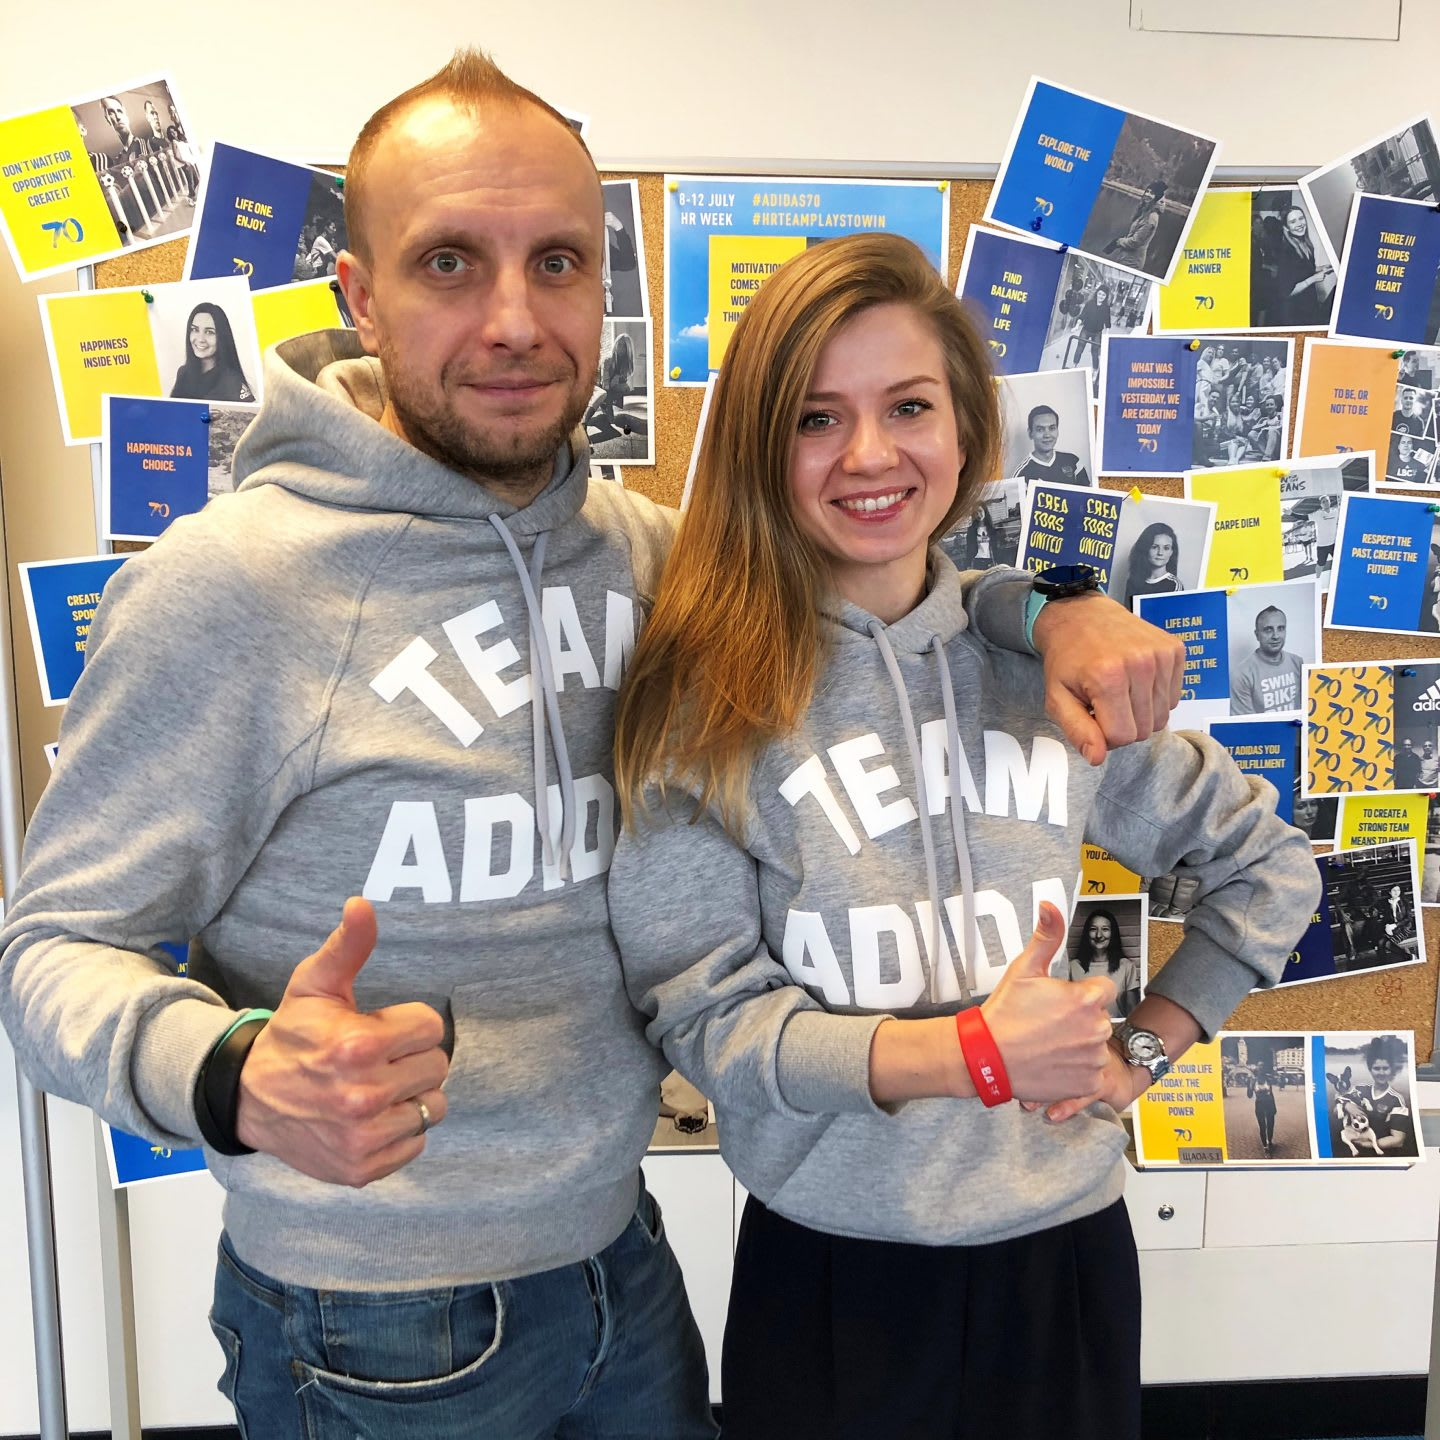 Man and woman wearing grey sweatshirts smiling with thumbs up gesture, teamwork, team, collaboration, happiness, workplace, worklife, culture, adidas